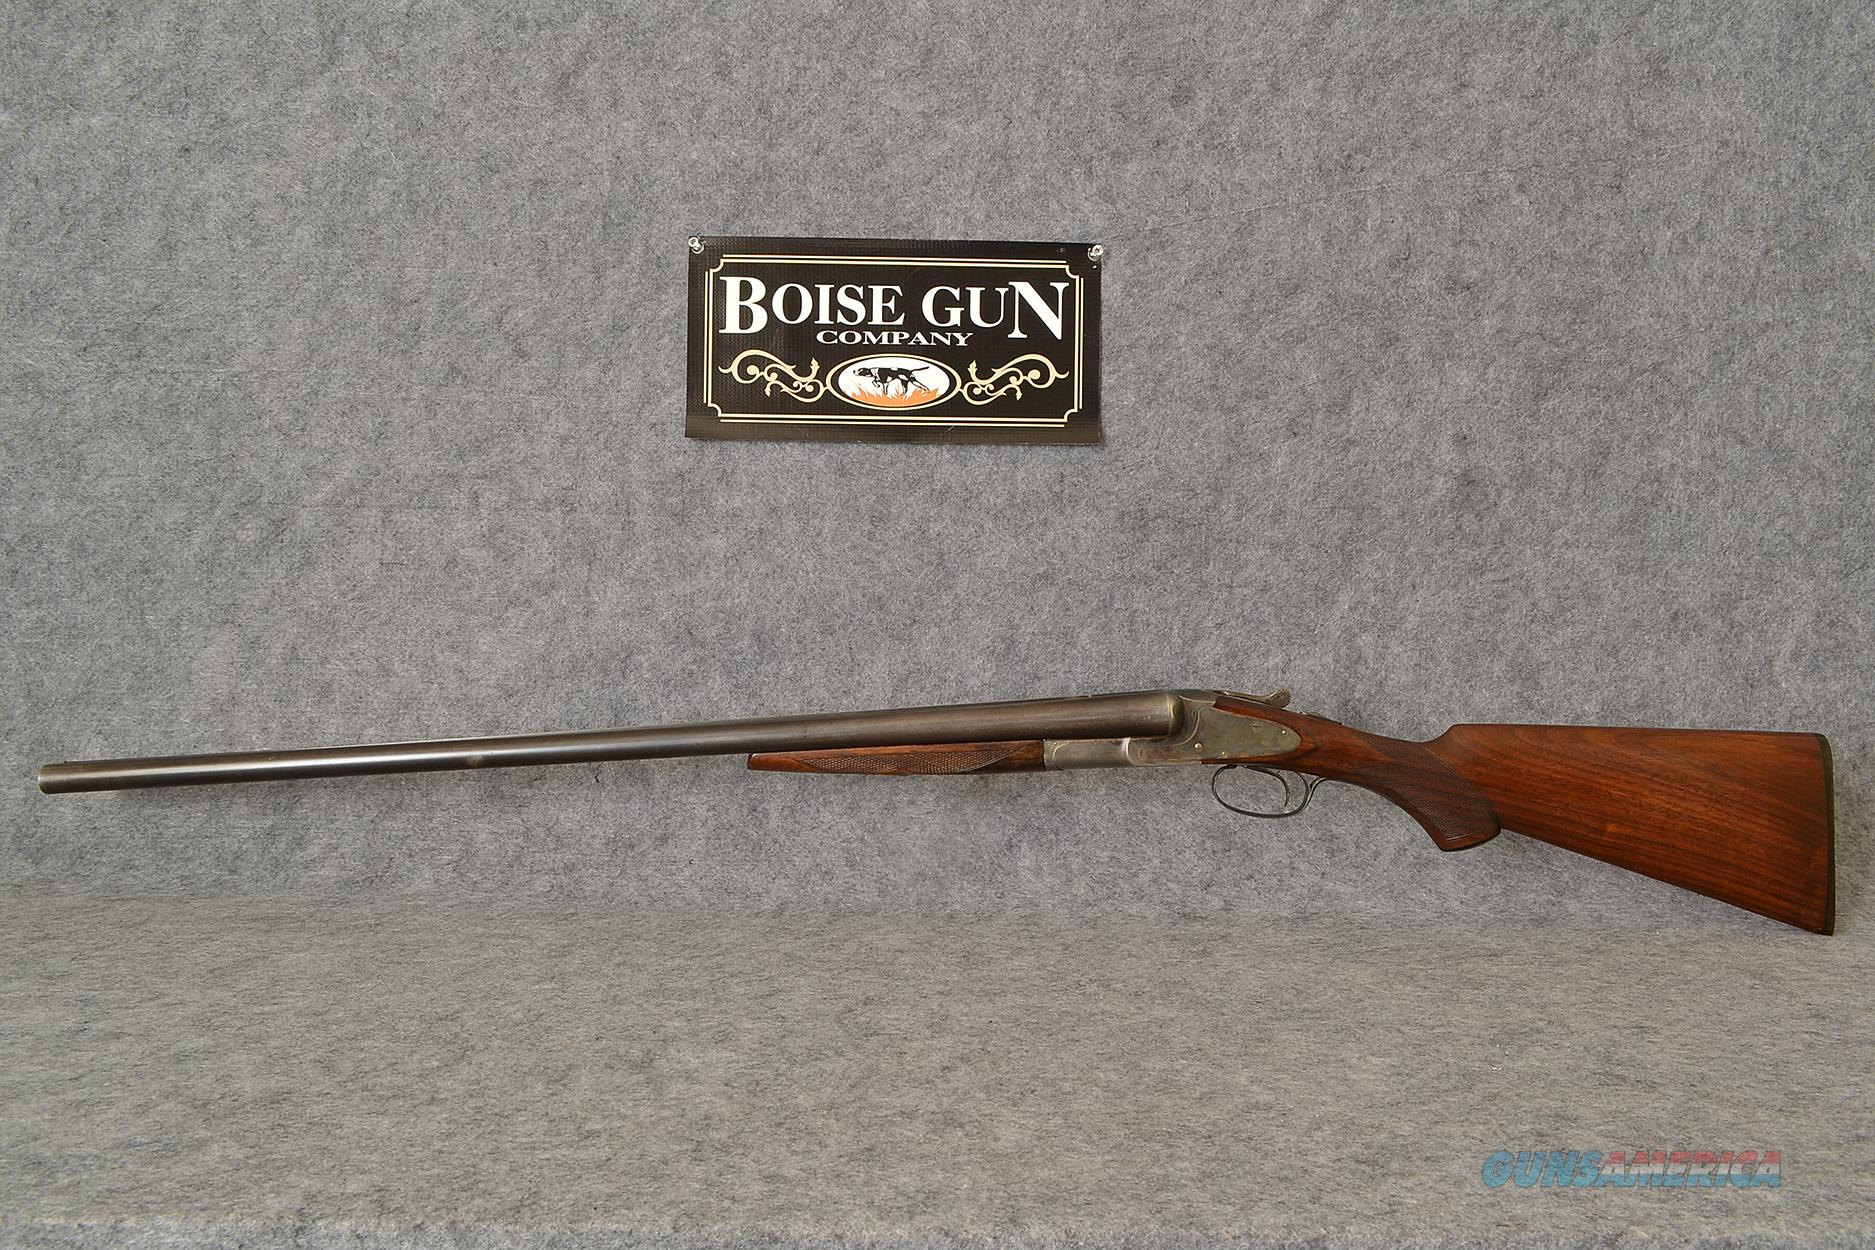 L.C. Smith SXS  12 Ga  Guns > Shotguns > L.C. Smith Shotguns